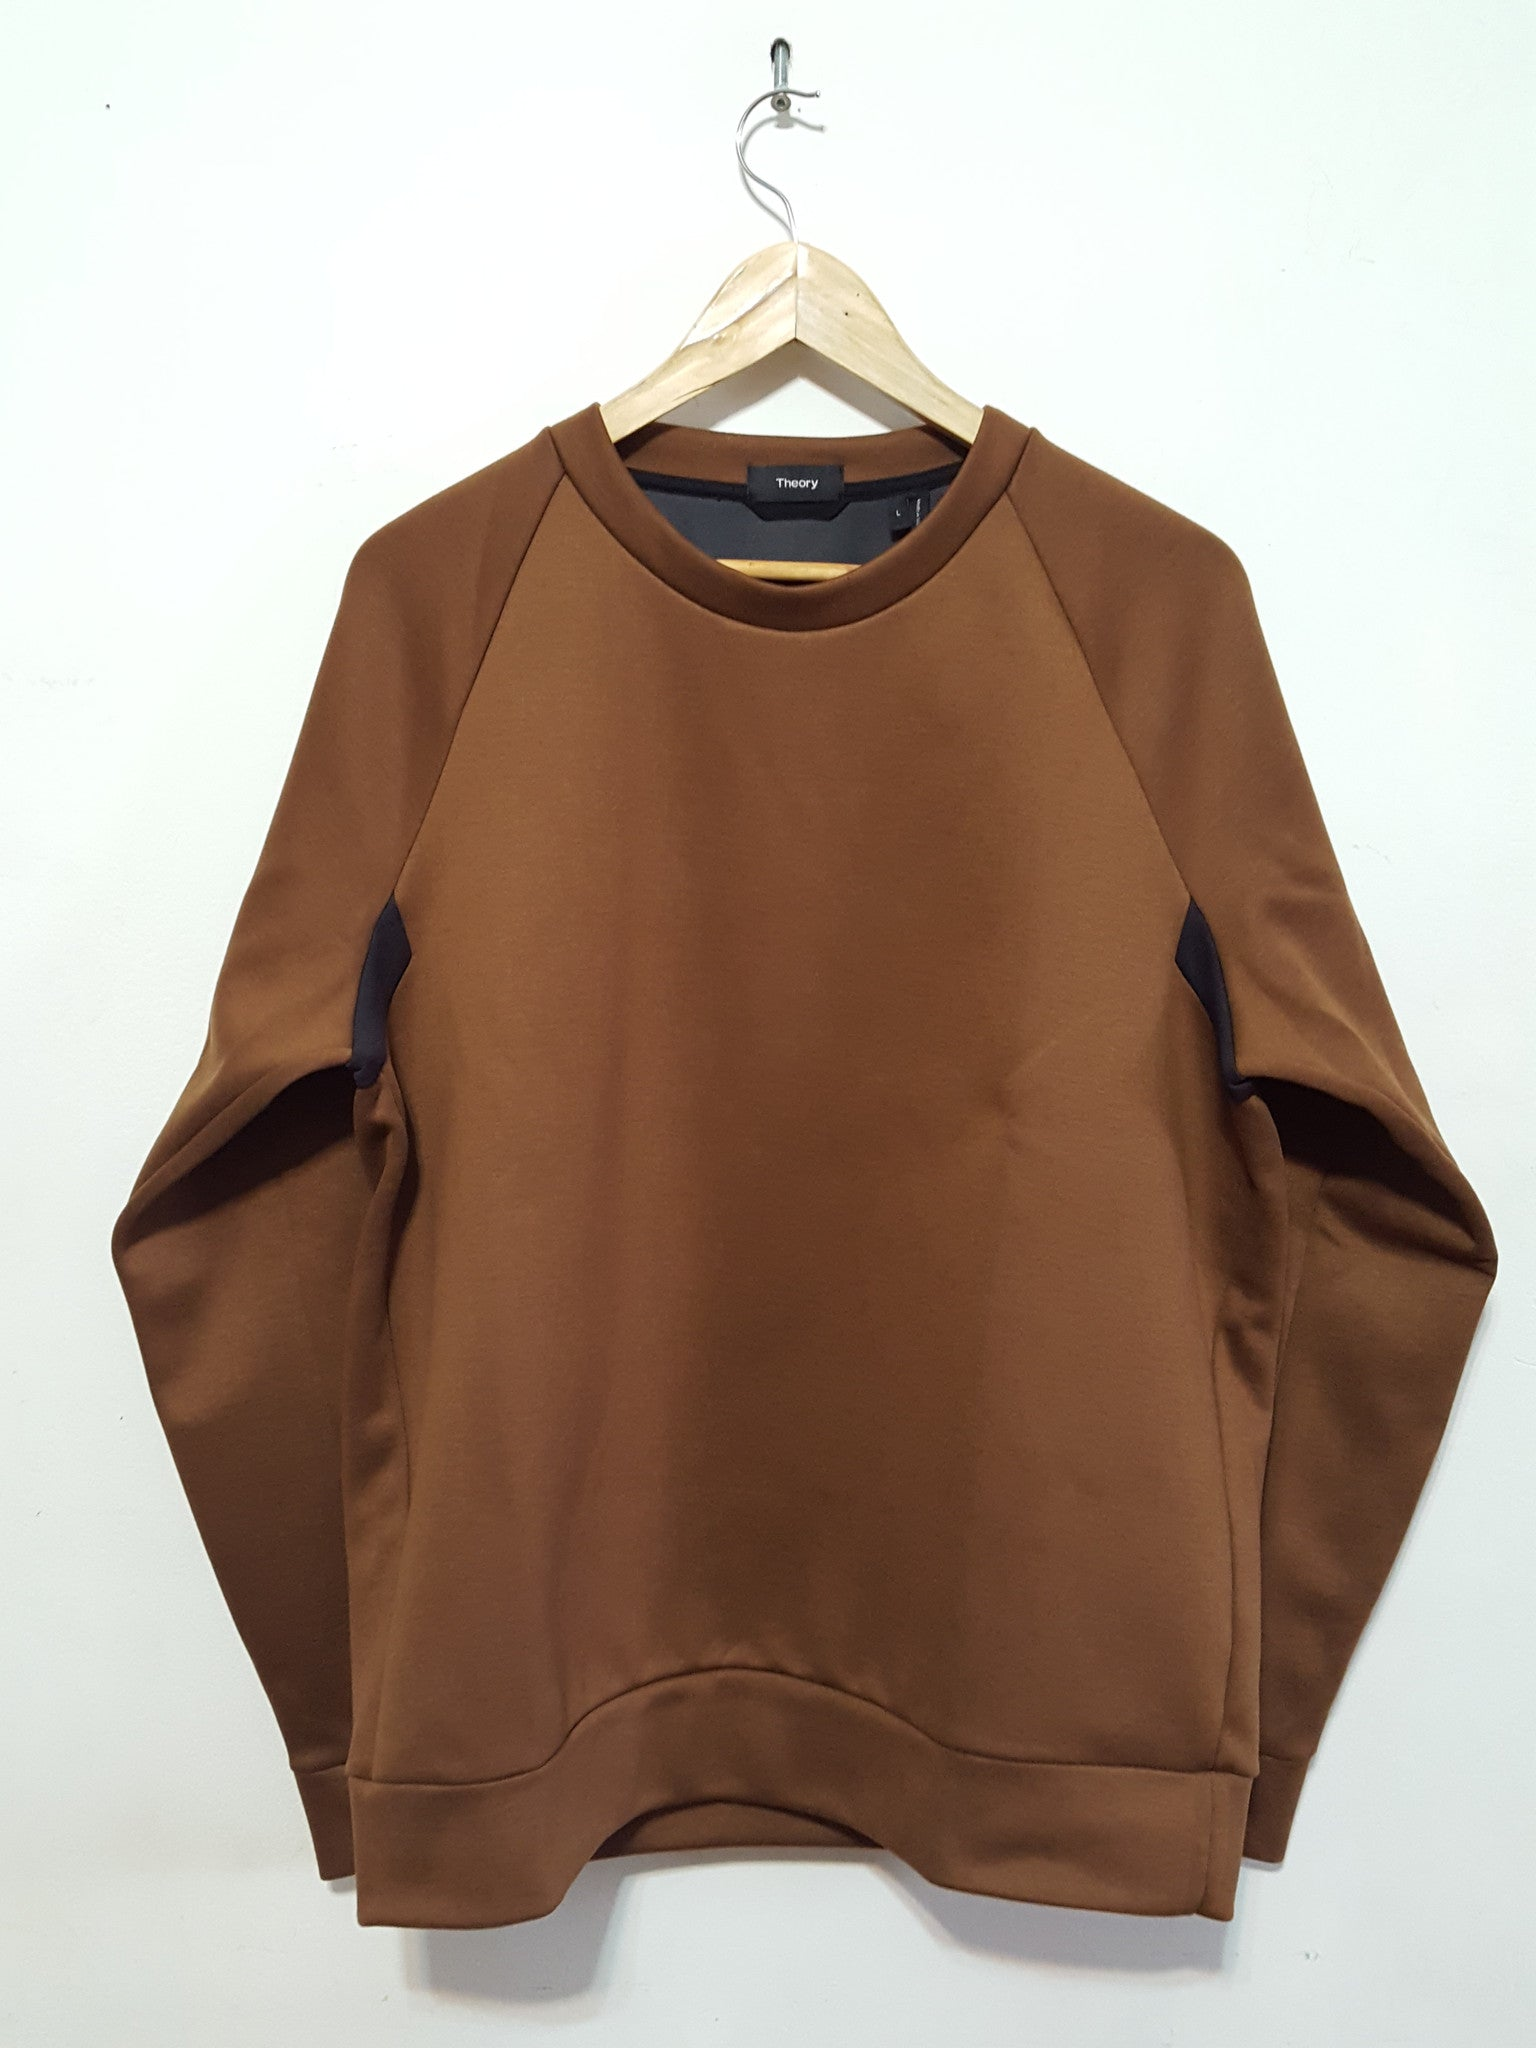 Mens Theory Brence Tecknit Sweatshirt, Brown sz. M, L, Mens, Theory, [shop_name